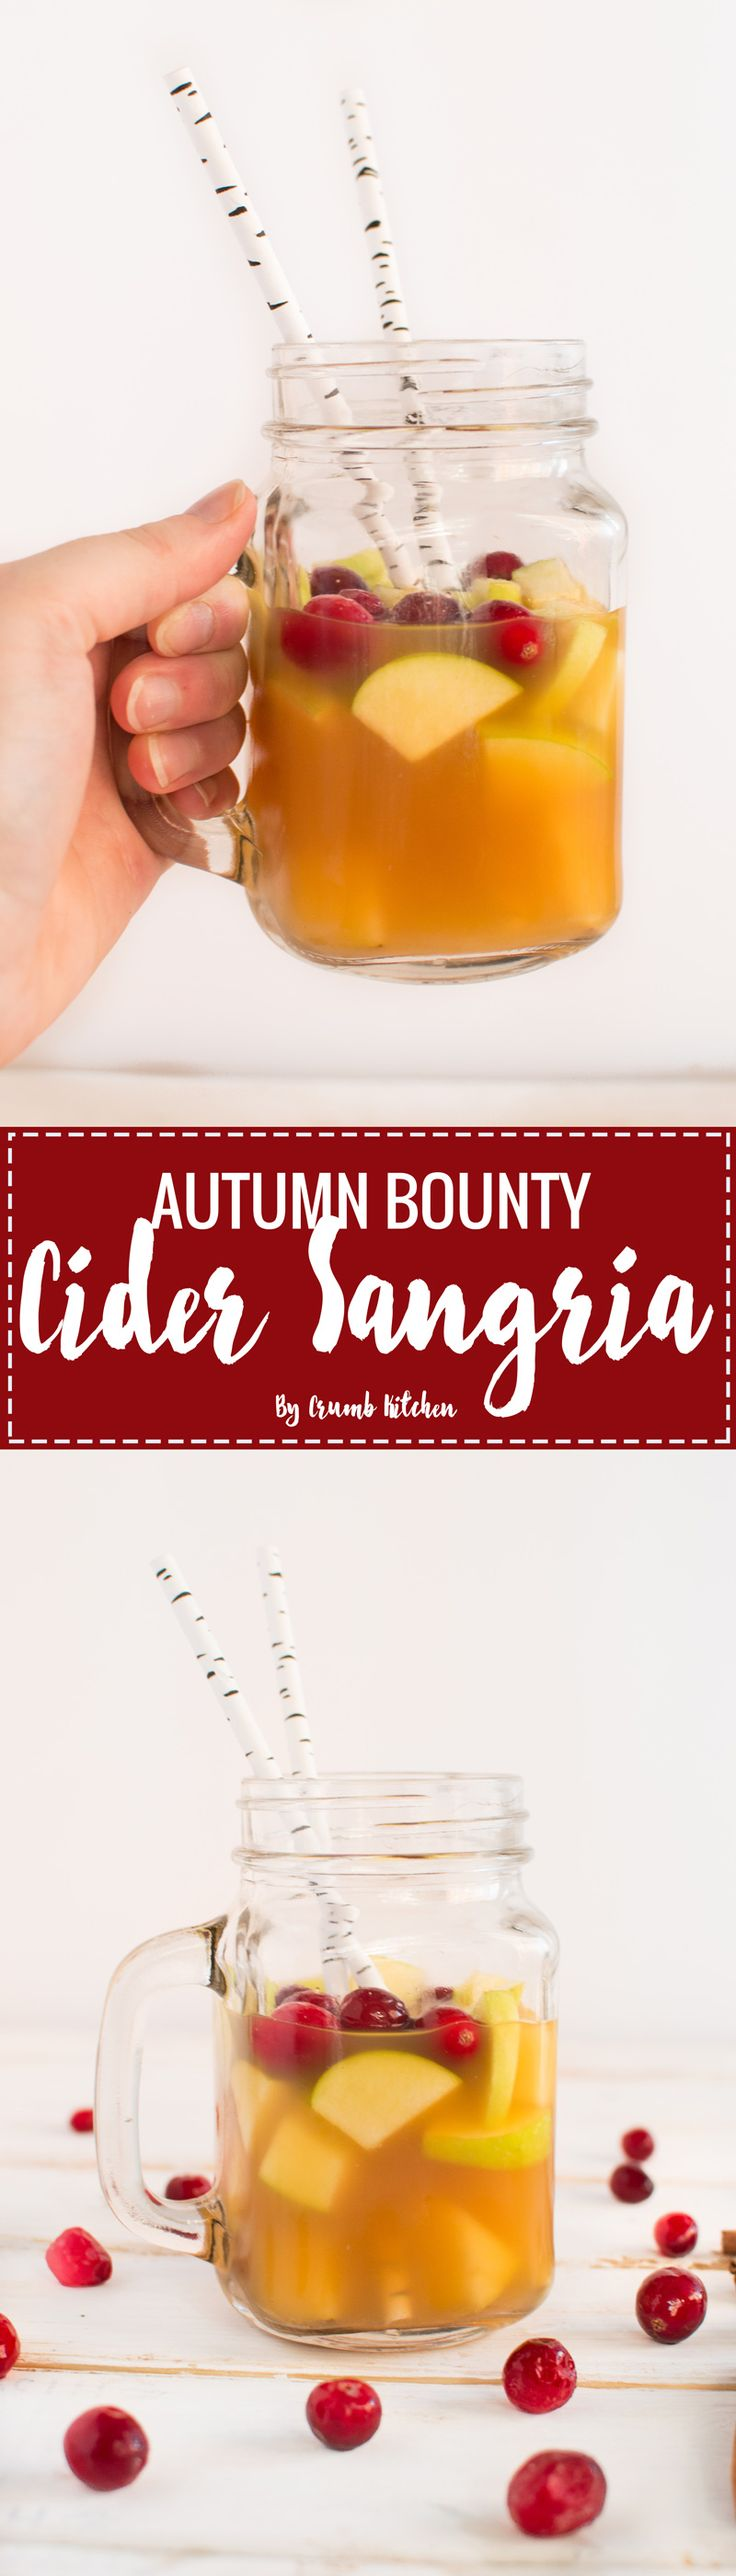 Fresh apples, pears, cranberries and spices fill this Autumn Bounty Cider Sangria with the best of Fall flavours. | Crumb Kitchen